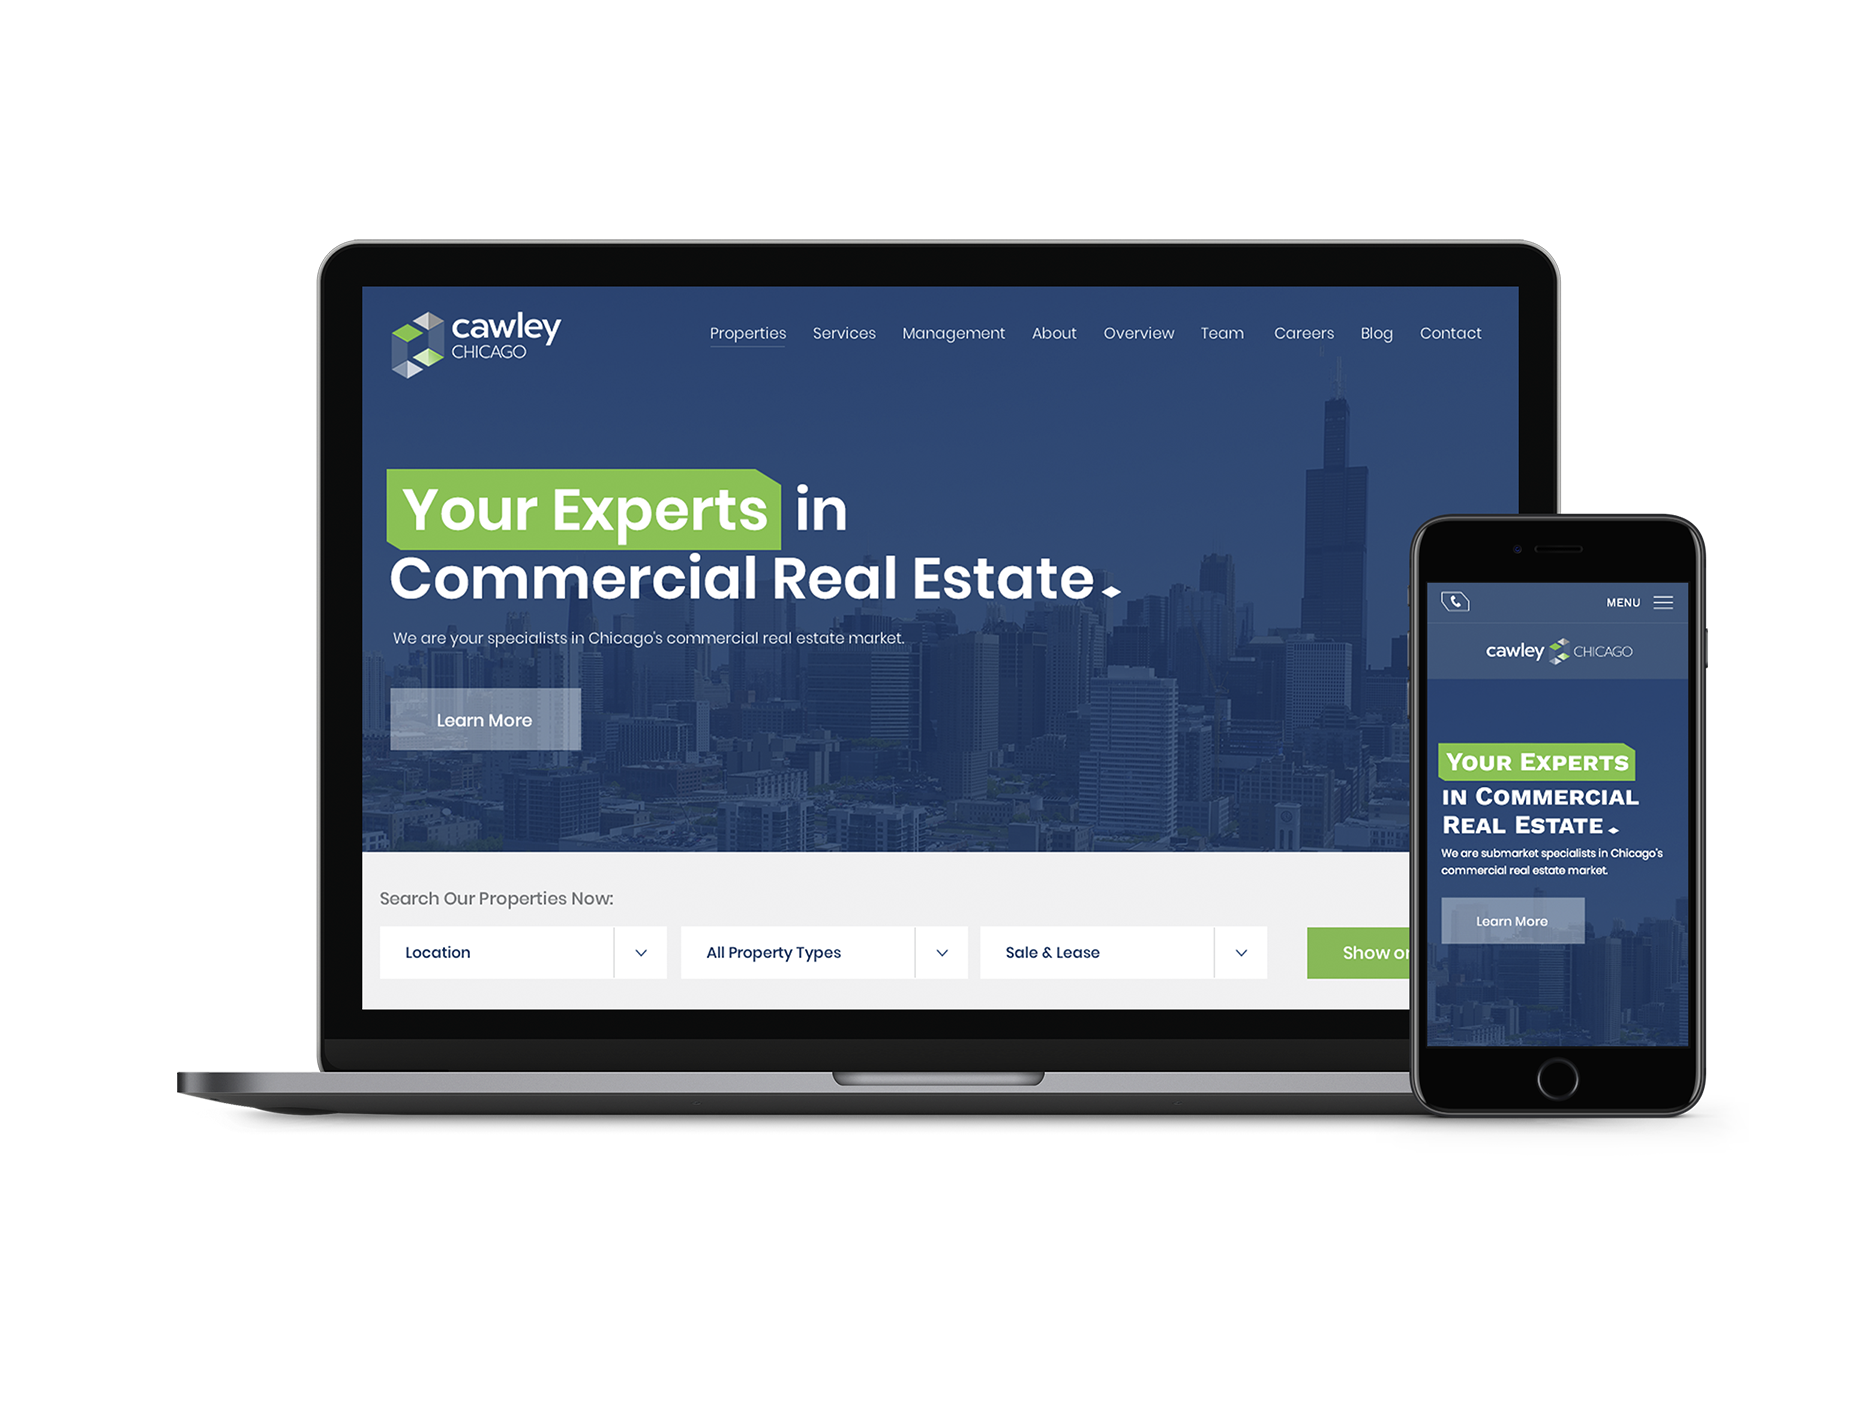 Cawley Chicago Commercial Real Estate Website Digital Marketing